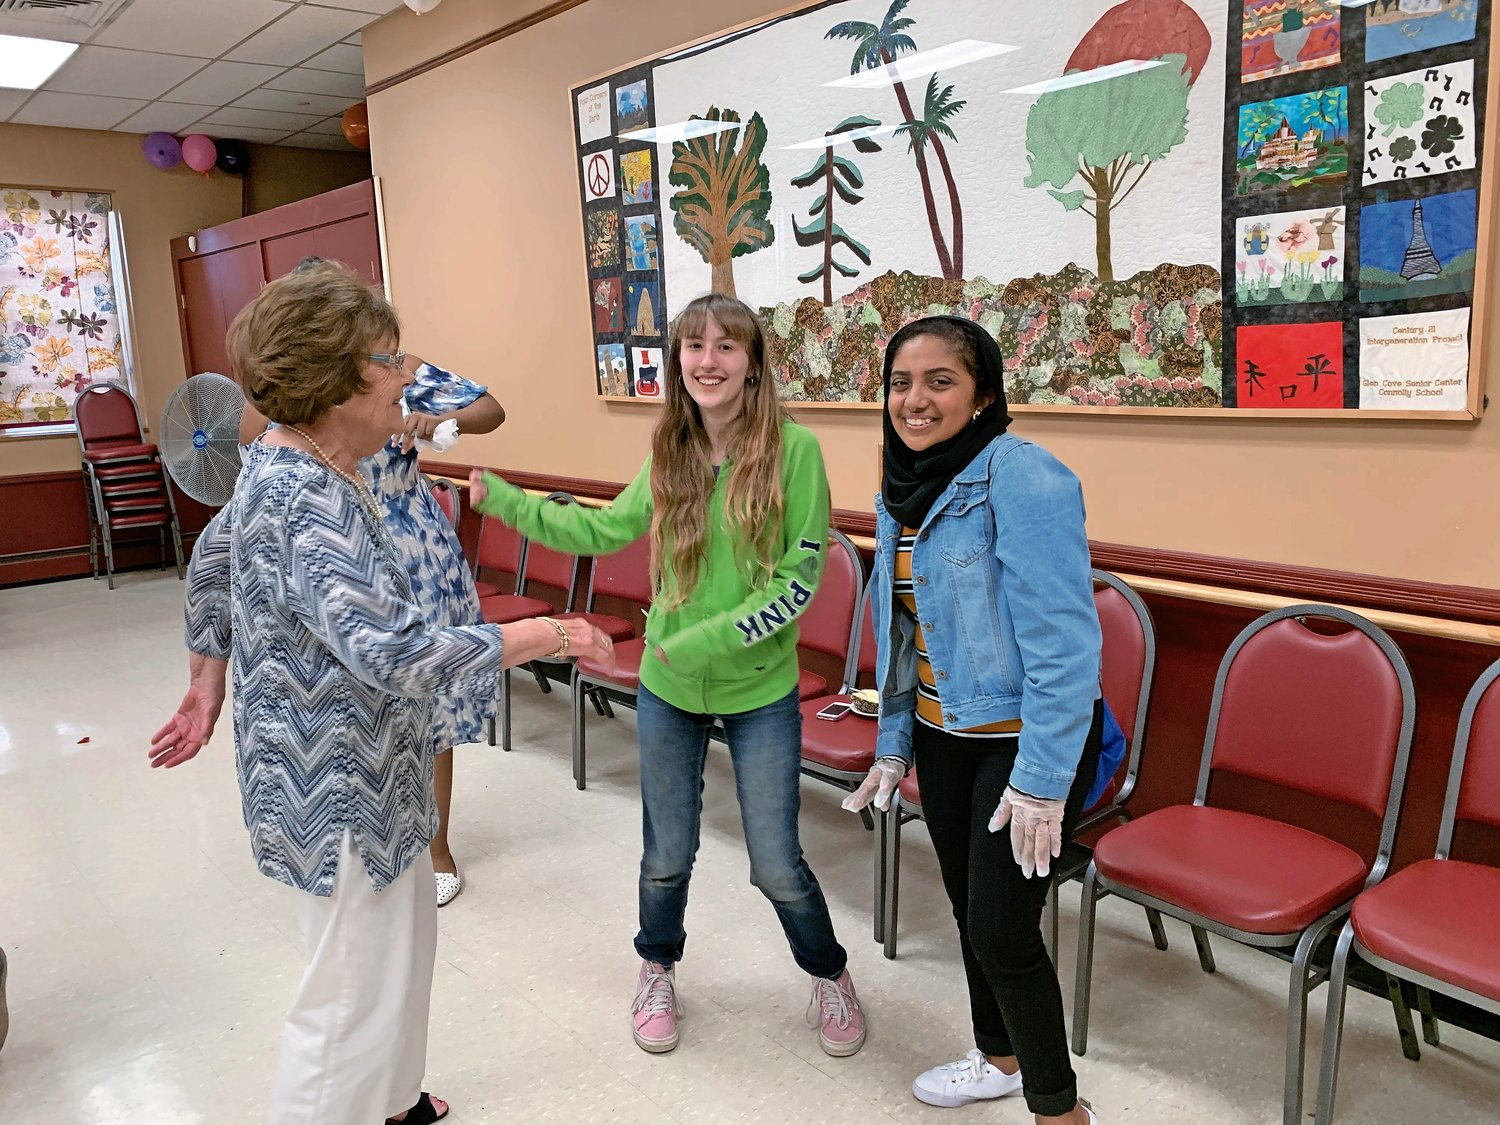 Shirley Skeldon, 78, broke away from the other seniors to dance with sophomores Angelina Holden, 16, and Jasmyn Fakhry, 15.